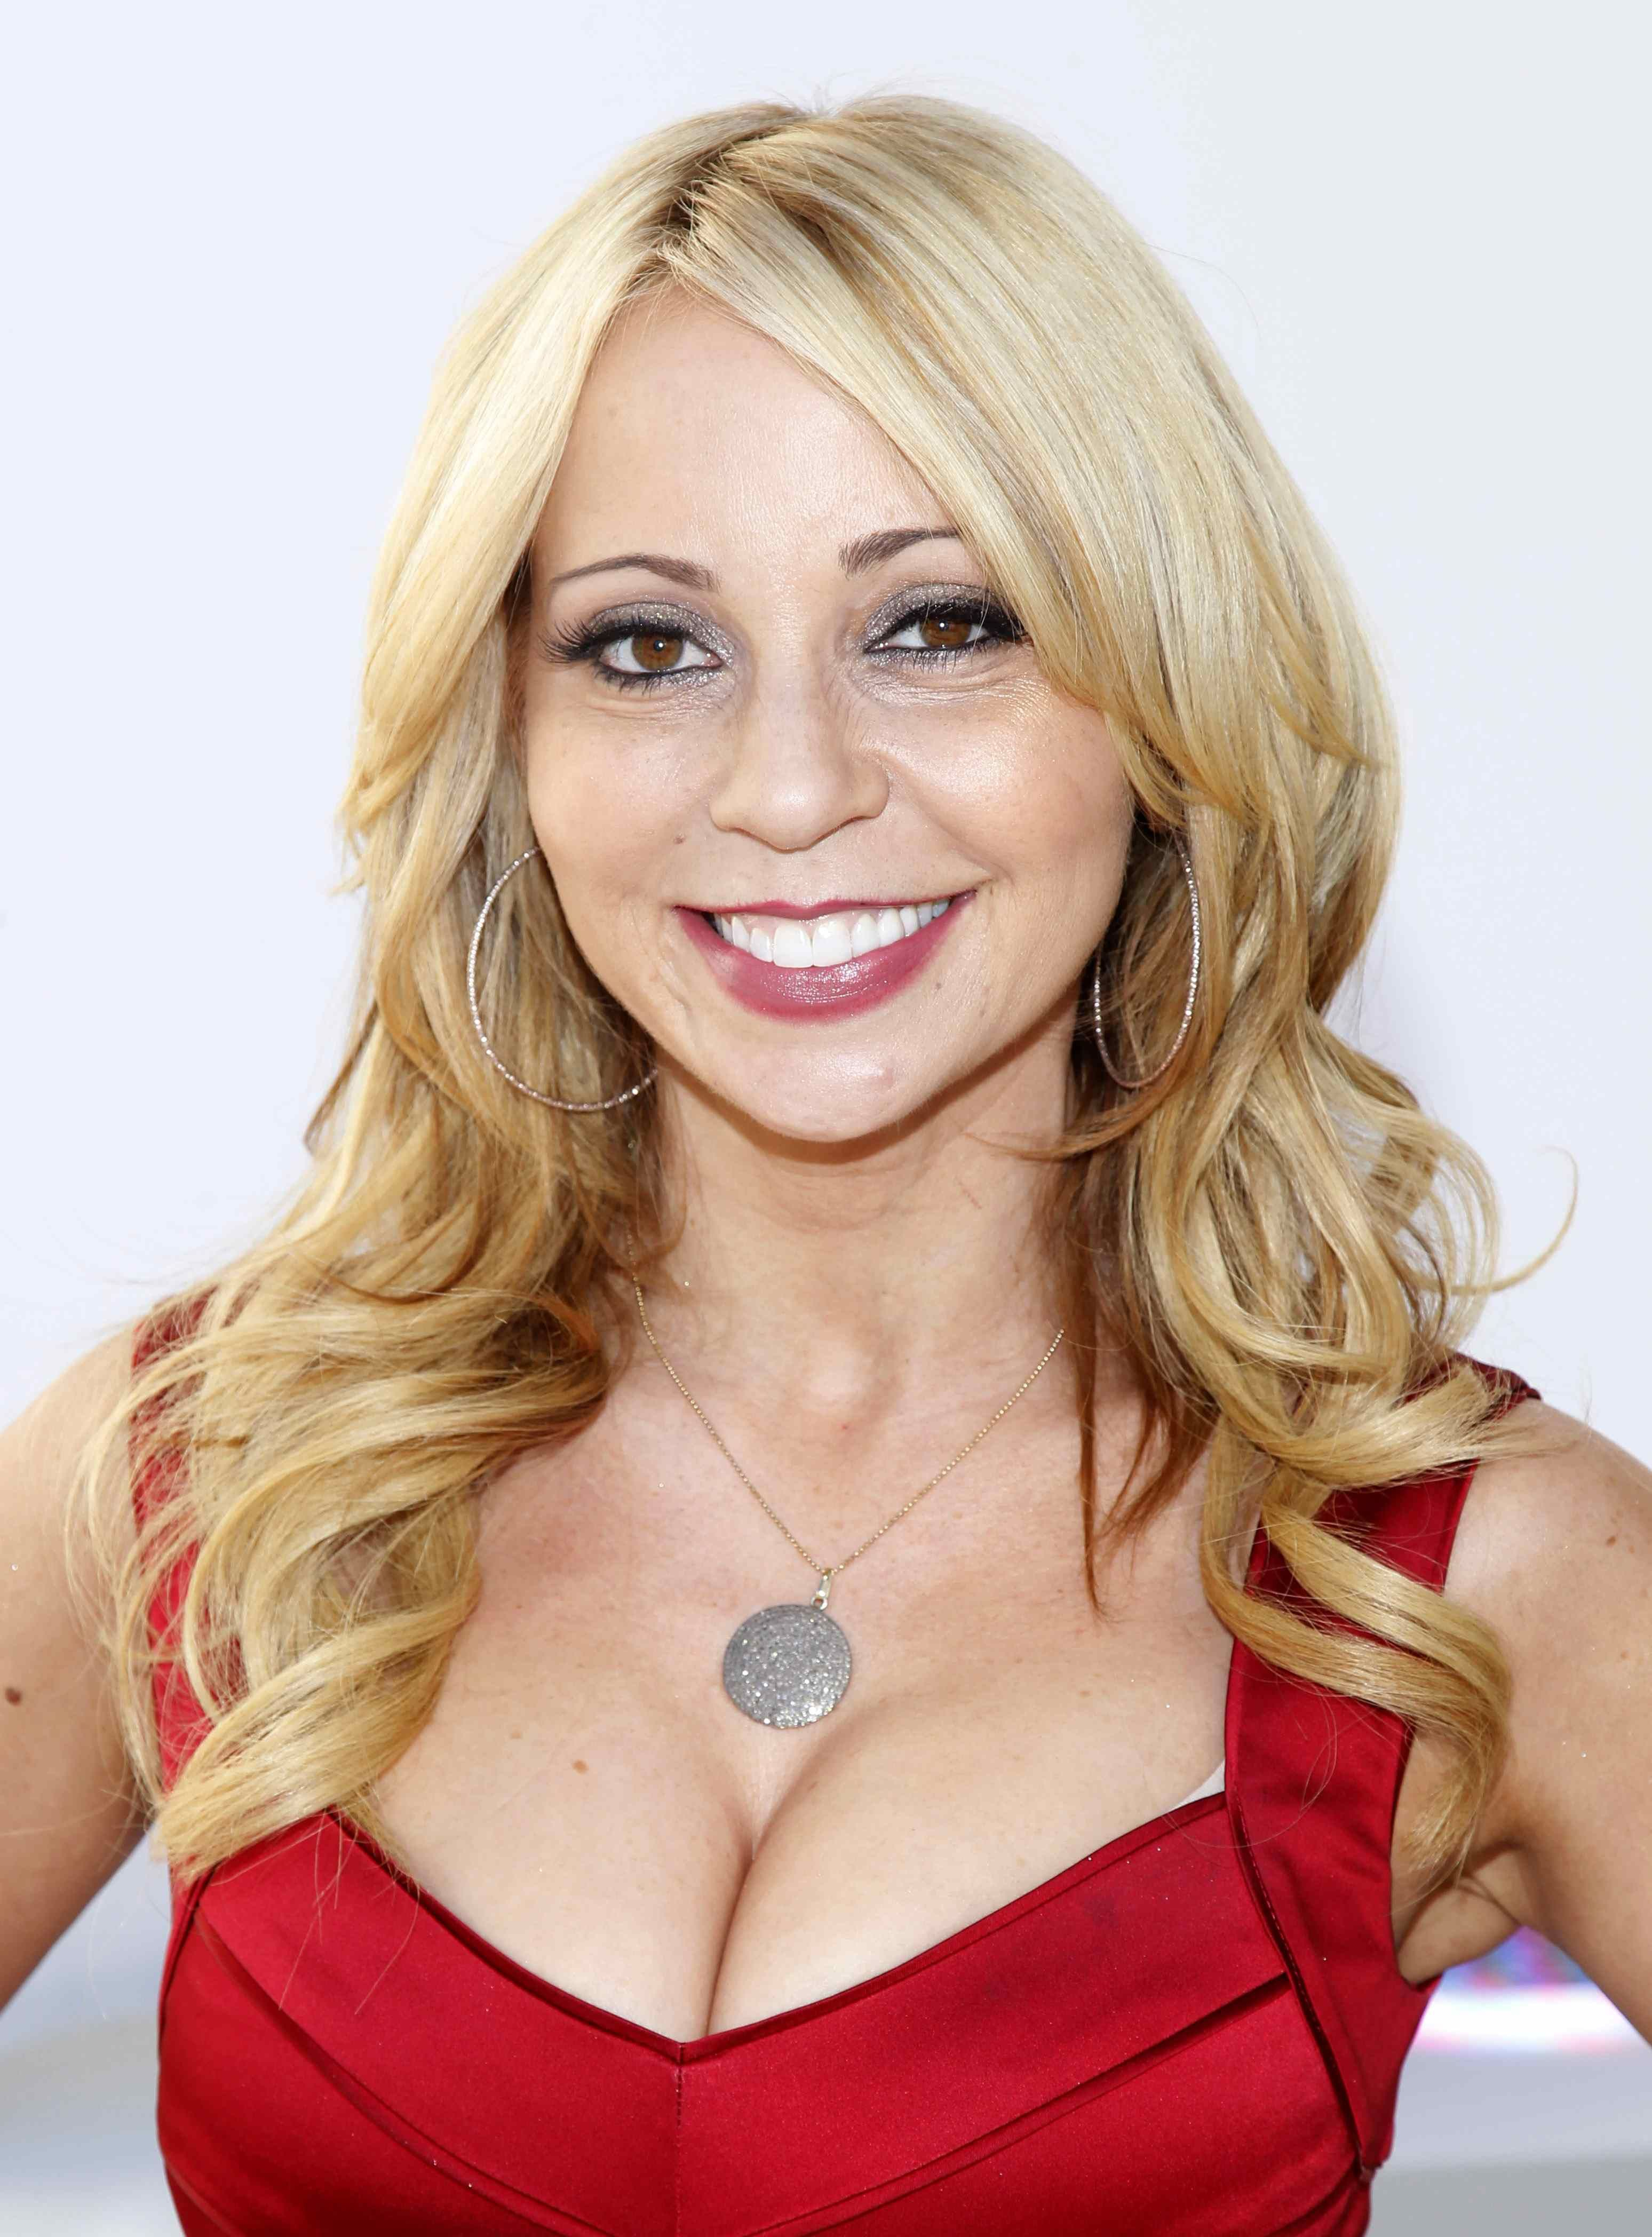 Best Boobs On Tv - Page 5 - Wrestling Forum  Wwe, Impact -1549